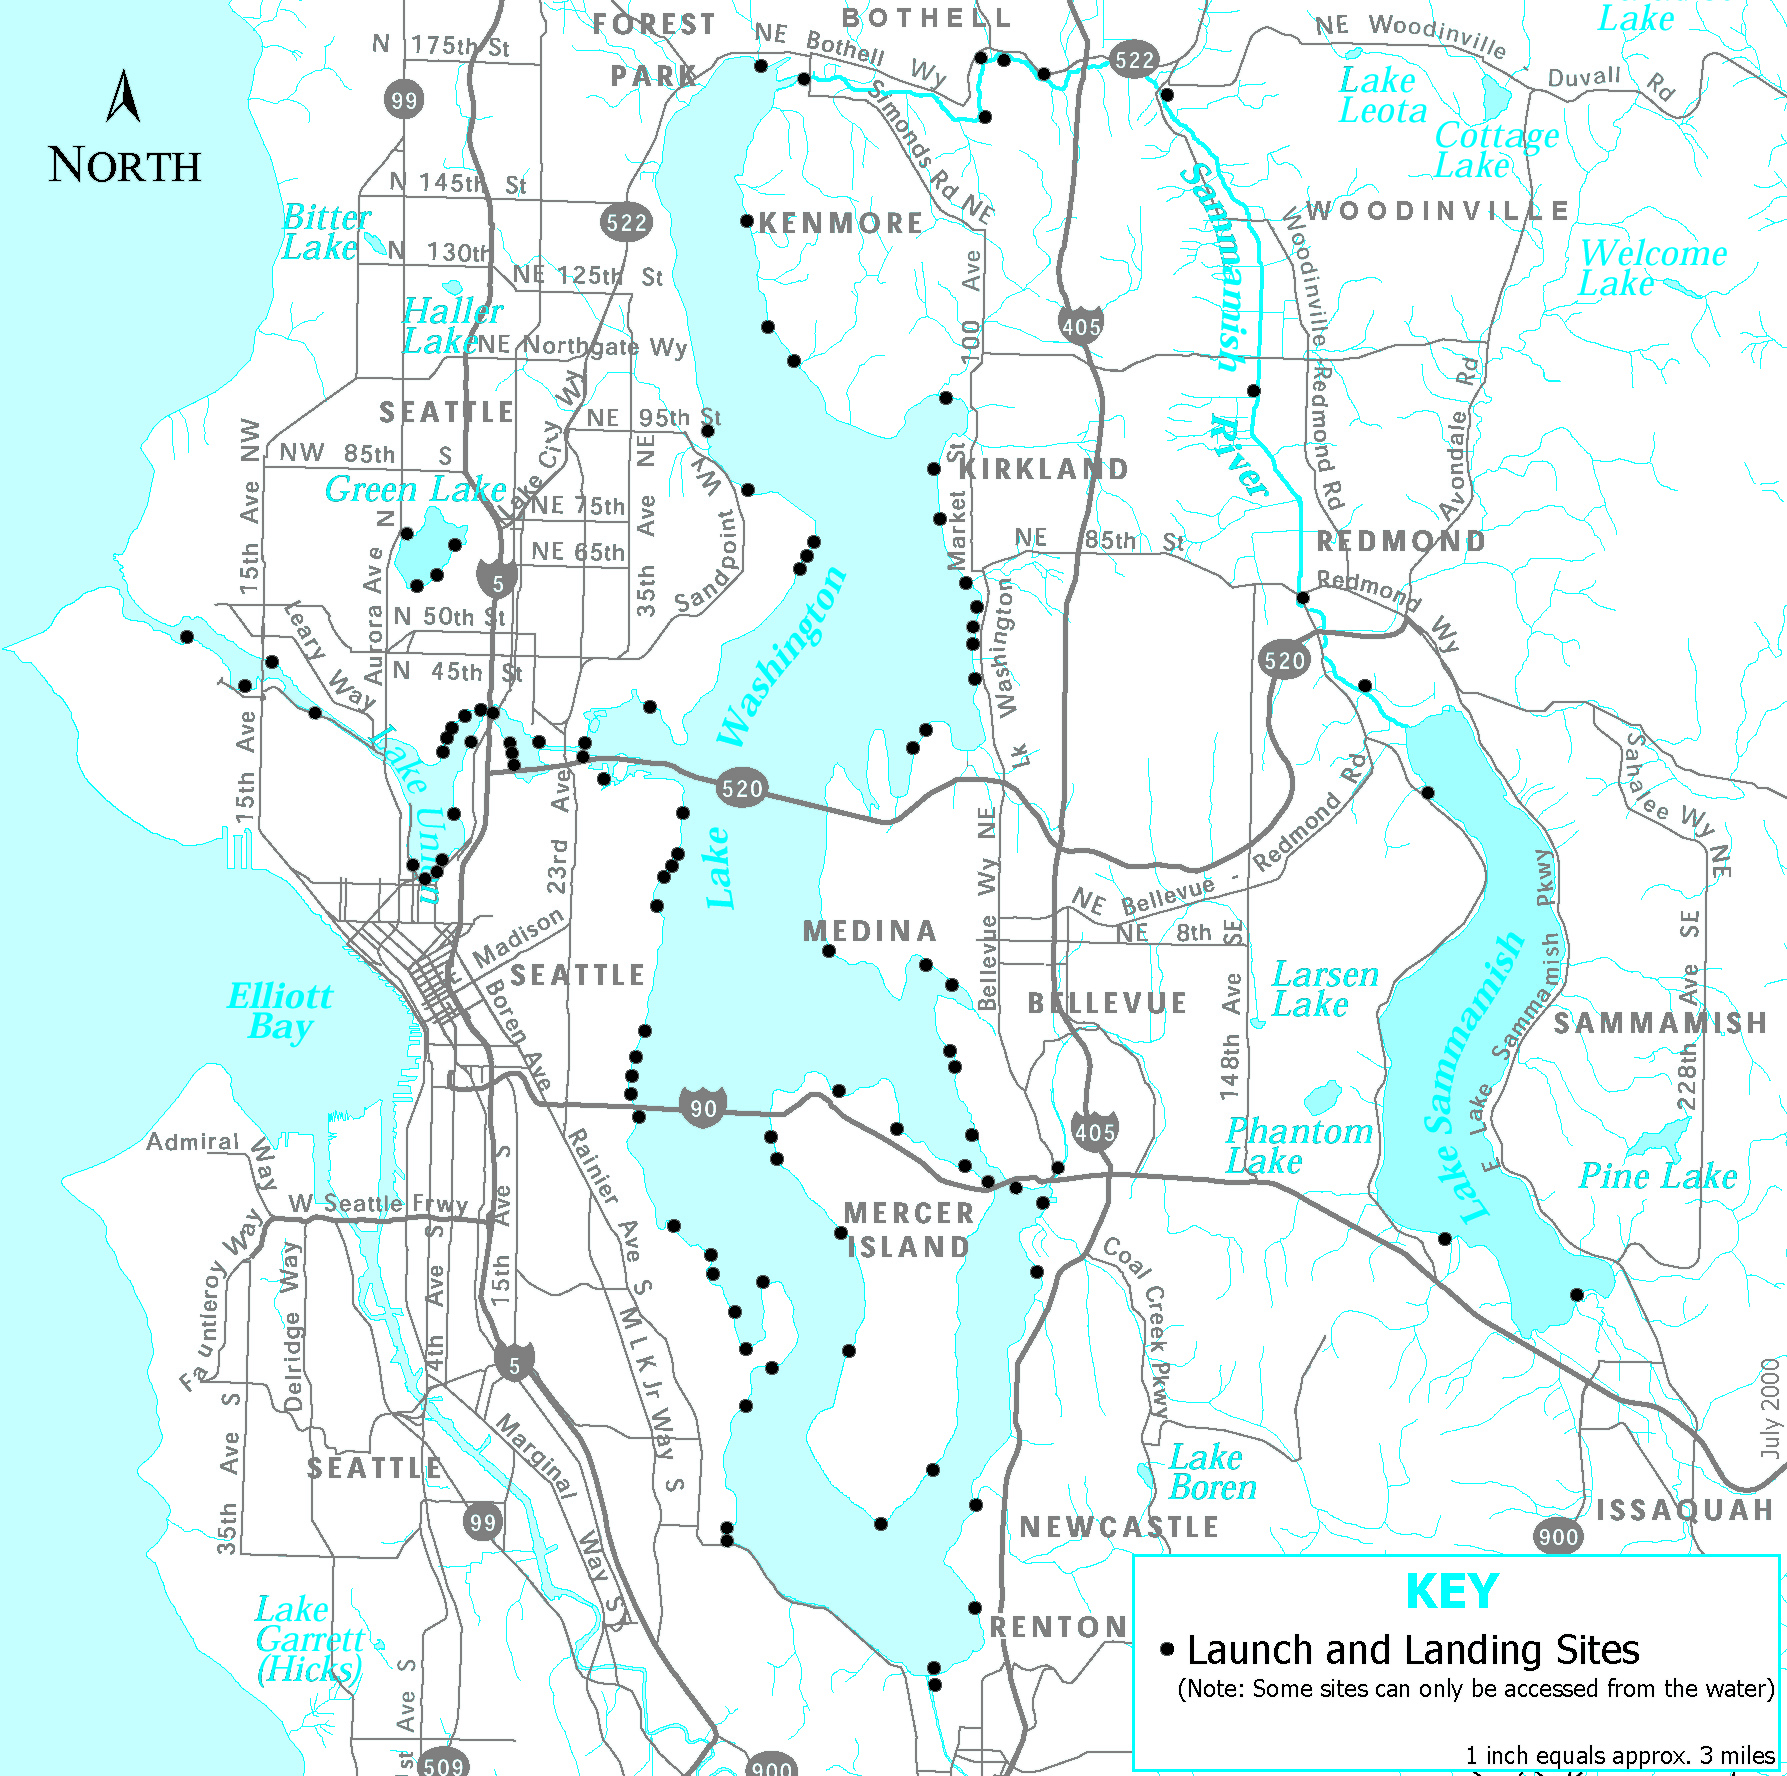 Lakes-To-Locks Water Trail | Washington Water Trails ociation on